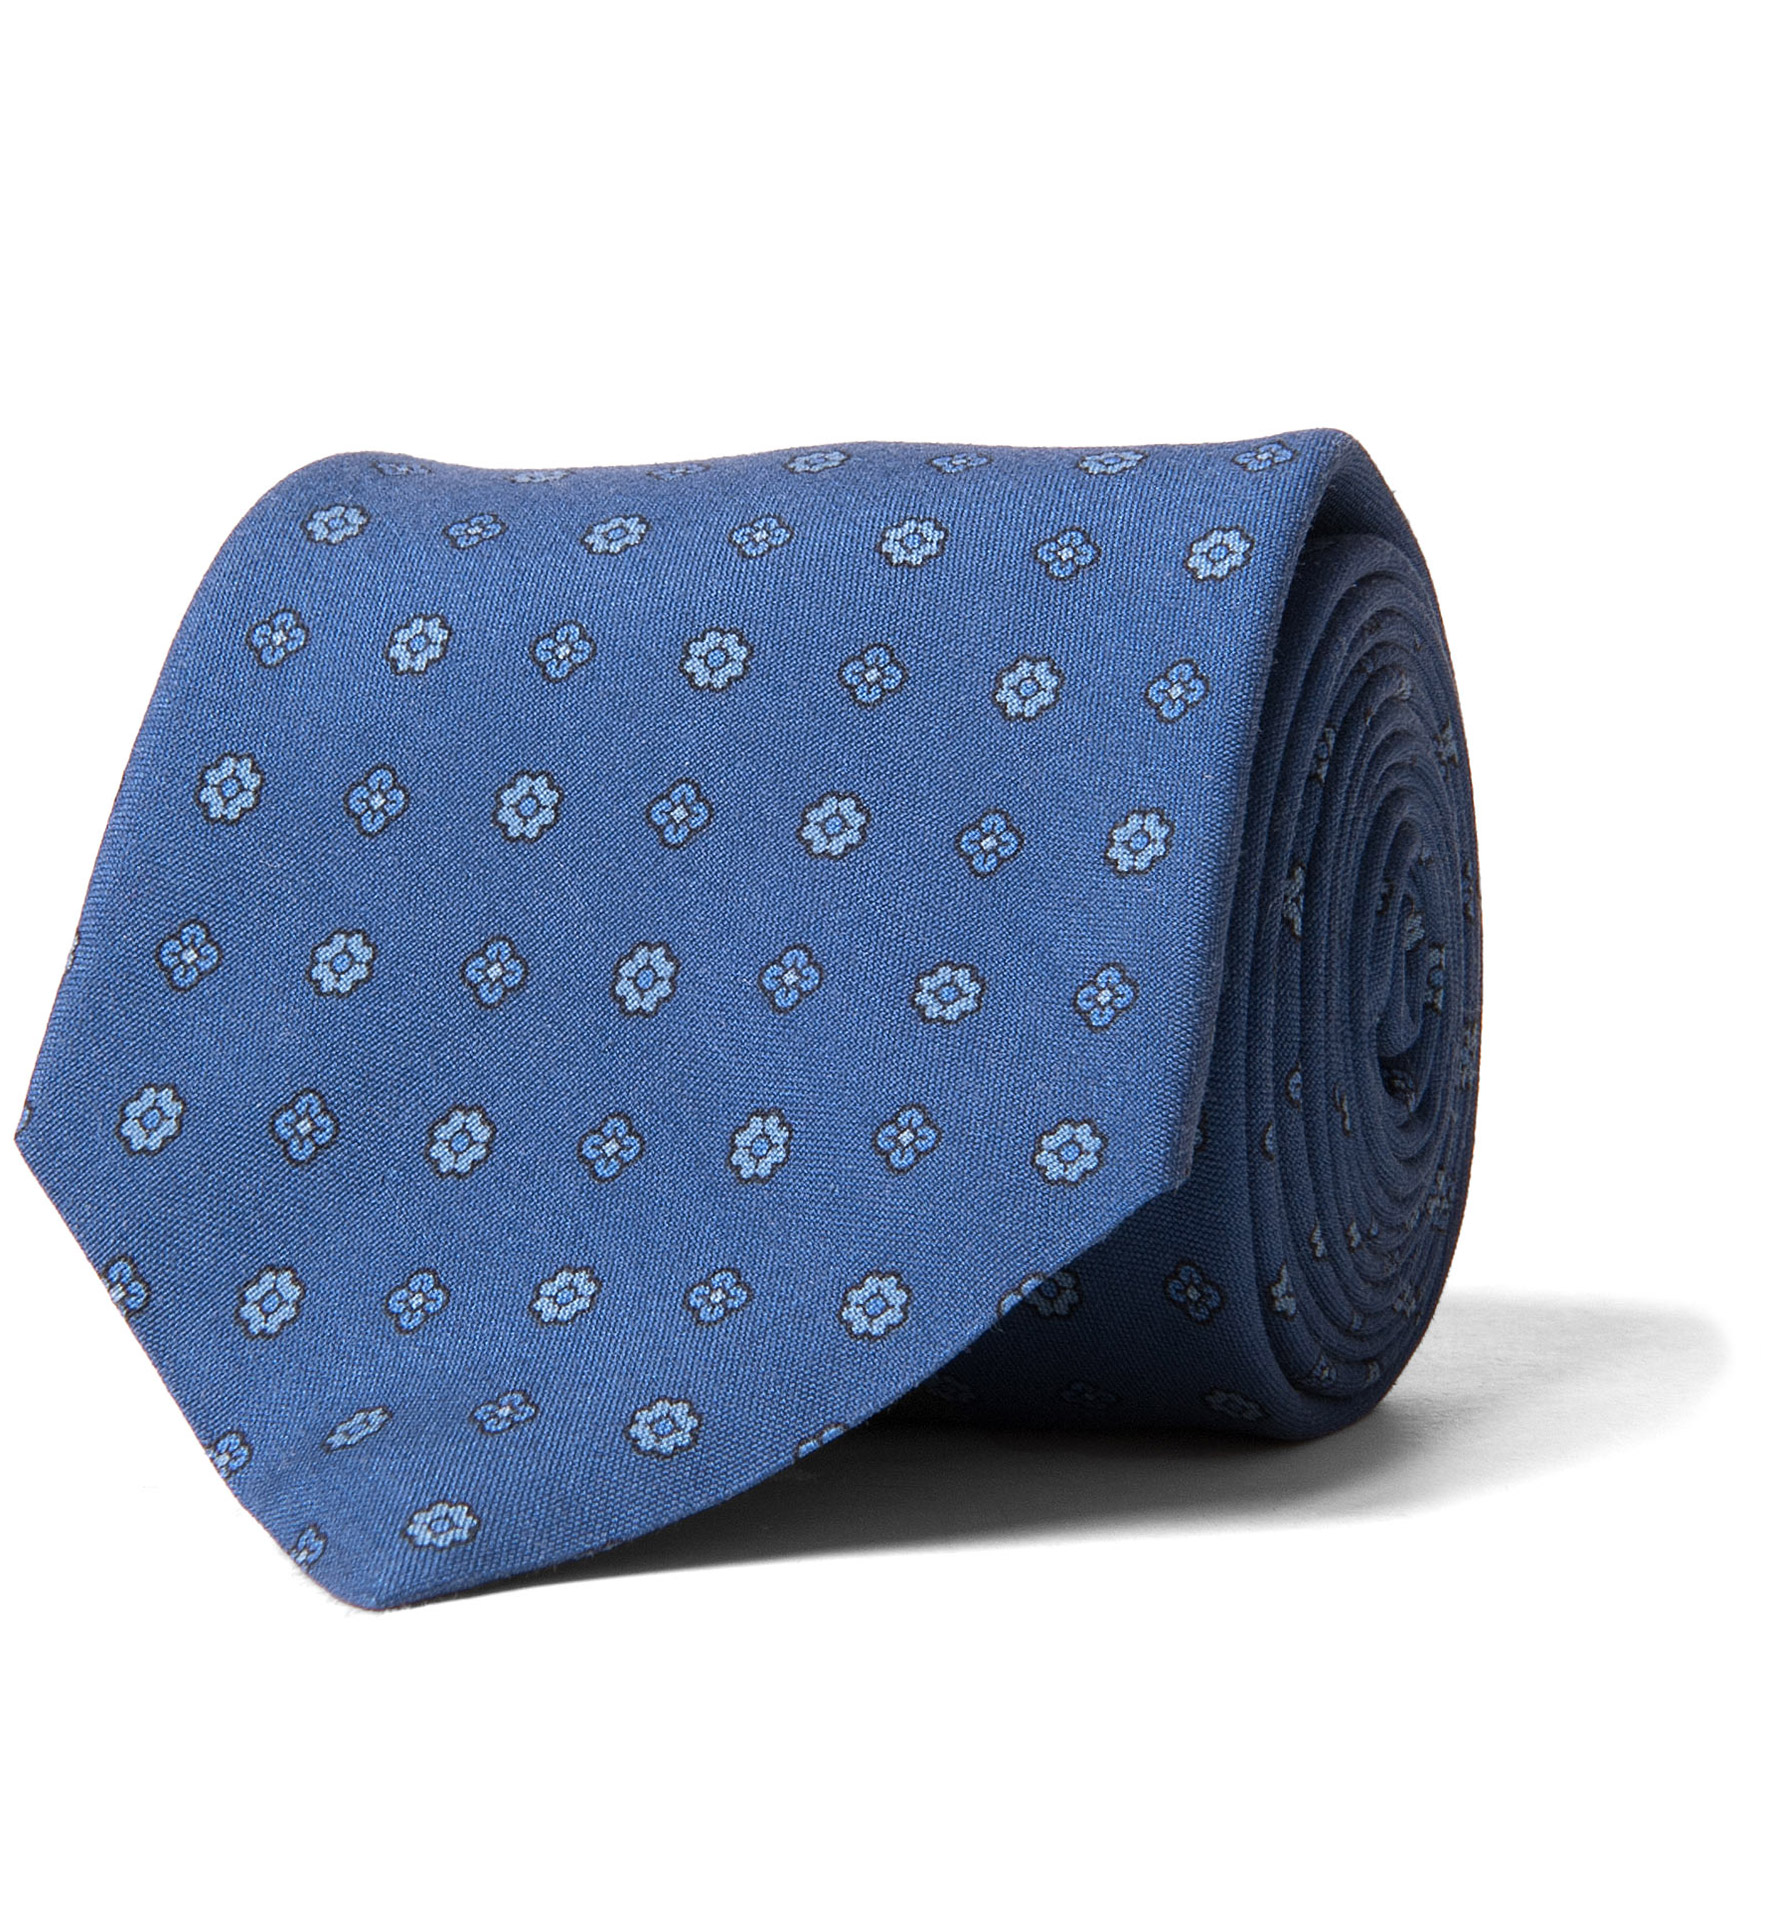 Zoom Image of Ocean Blue Grey and Light Blue Small Foulard Print Tie